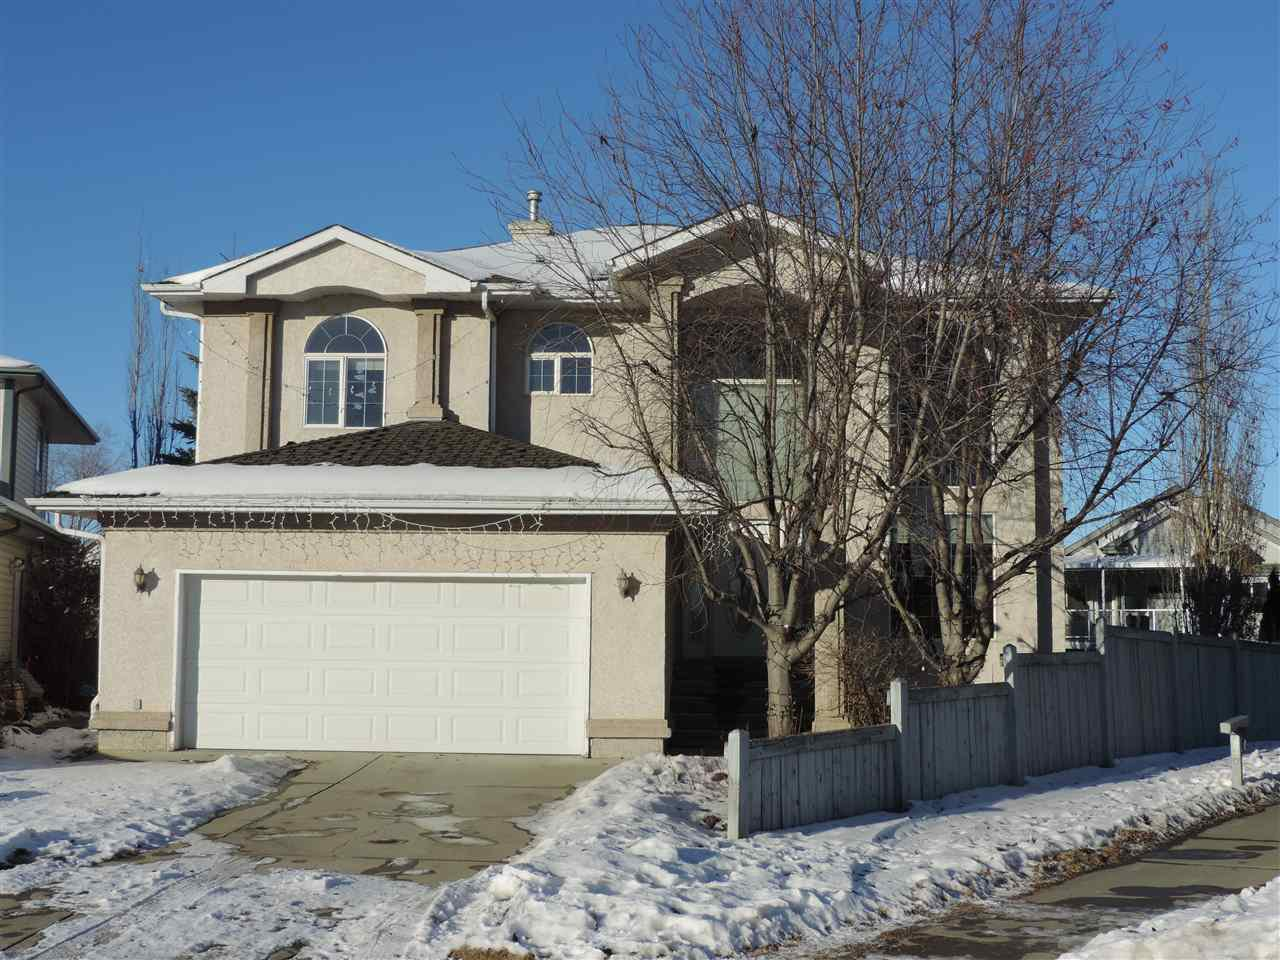 Main Photo: 14772 131 Street in Edmonton: Zone 27 House for sale : MLS®# E4222382